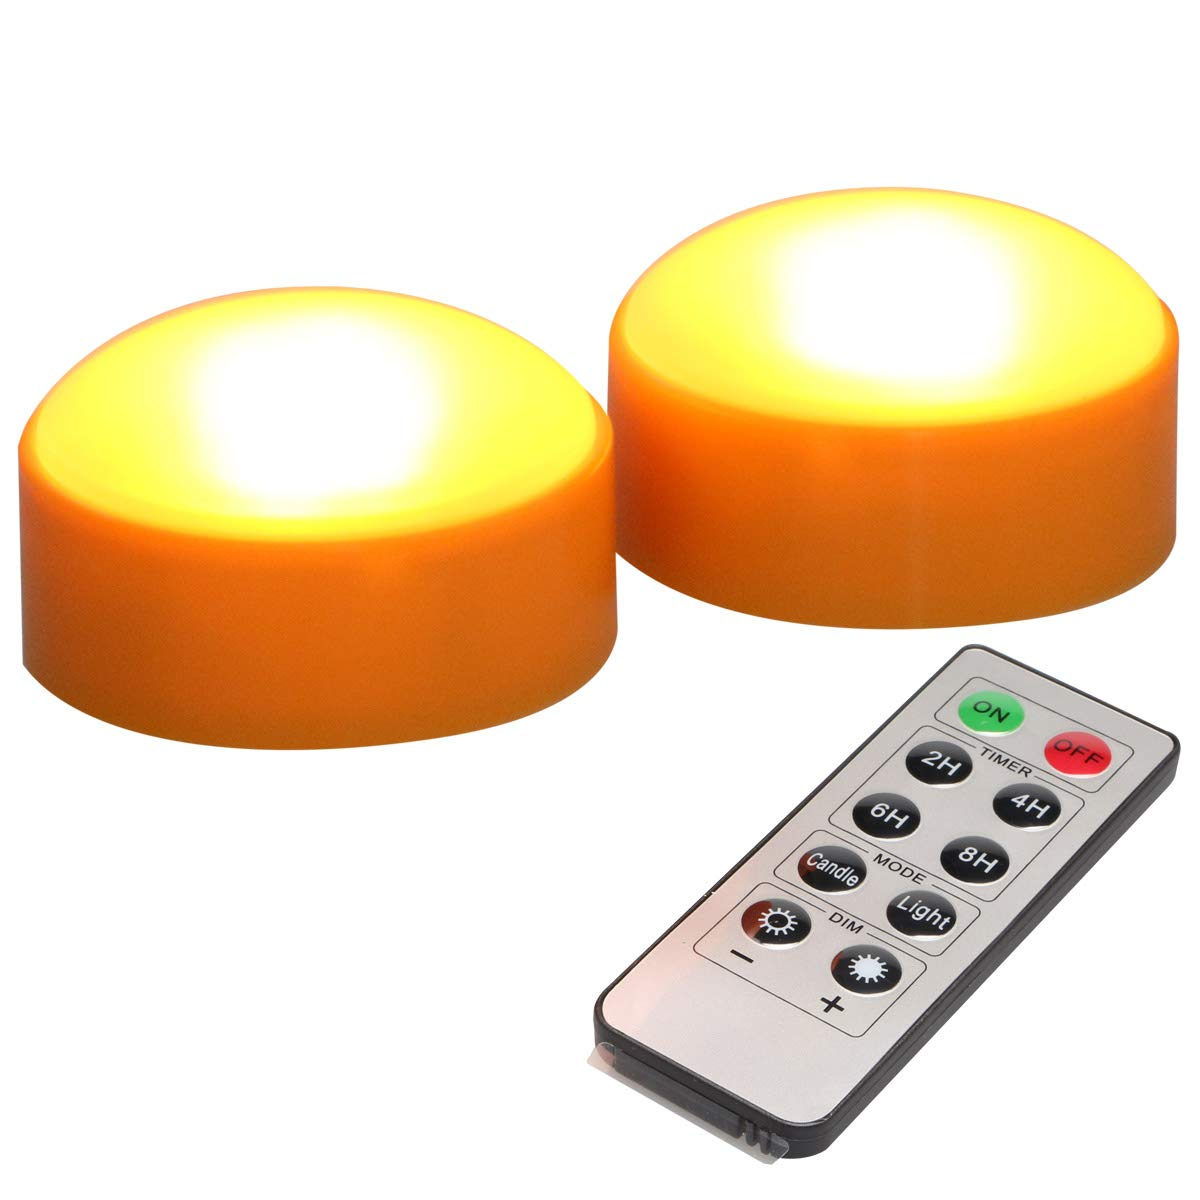 Battery Operated LED Pumpkin Lights with Romote & Timer, Set of 2 Flameless Candle Holder for Halloween Decorations-Orange